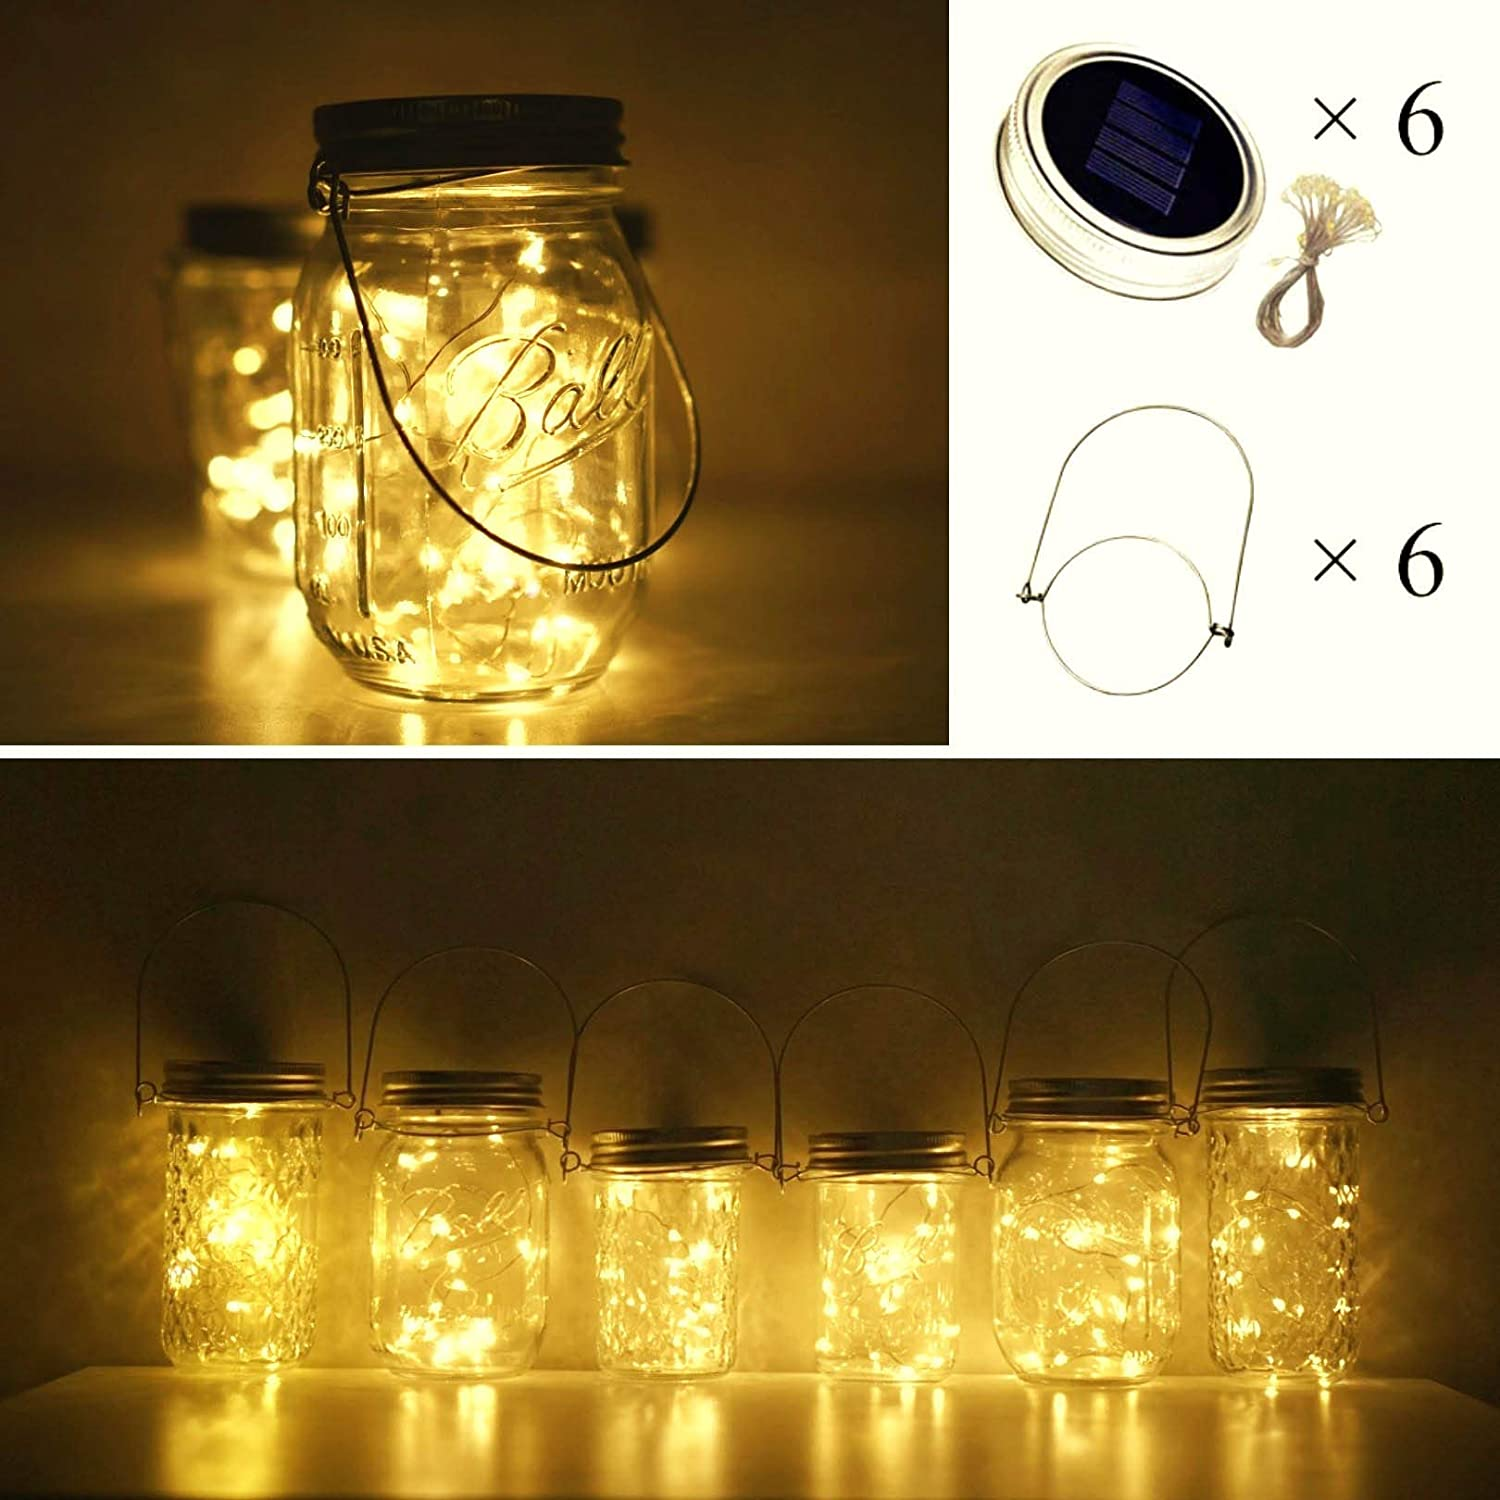 Cynzia Solar Mason Jar Lights, 6 Pack 10 LED Waterproof Fairy Star Firefly String Lights with 6 Hangers (Jar Not Included), for Mason Jar Garden Wedding Christmas Party Decor (Warm White)